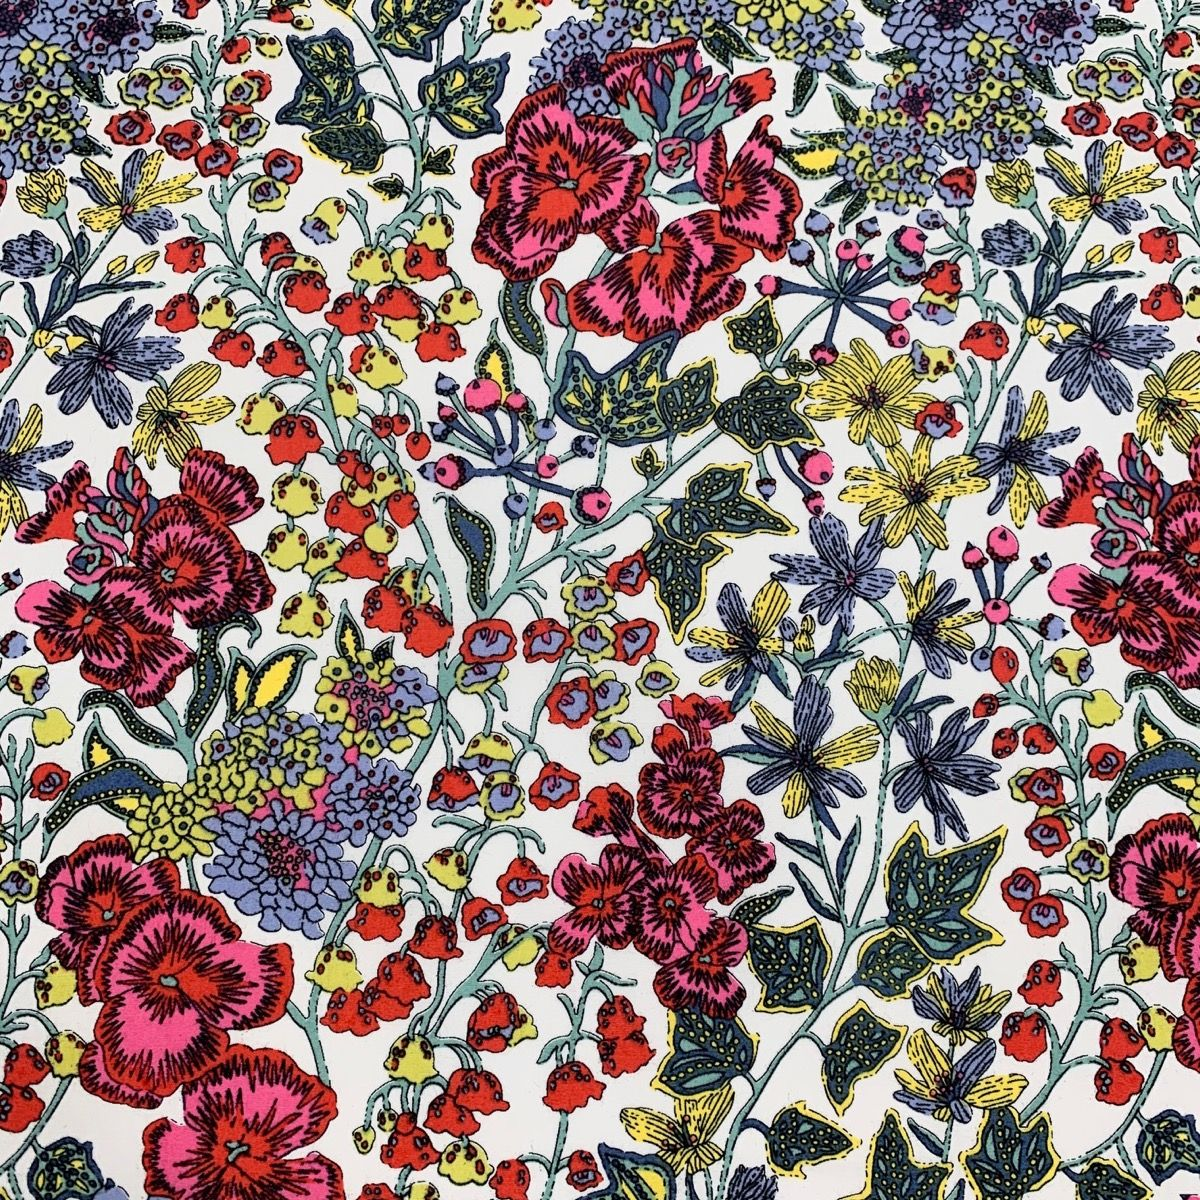 Cotton Lawn - Vibrant Country Floral